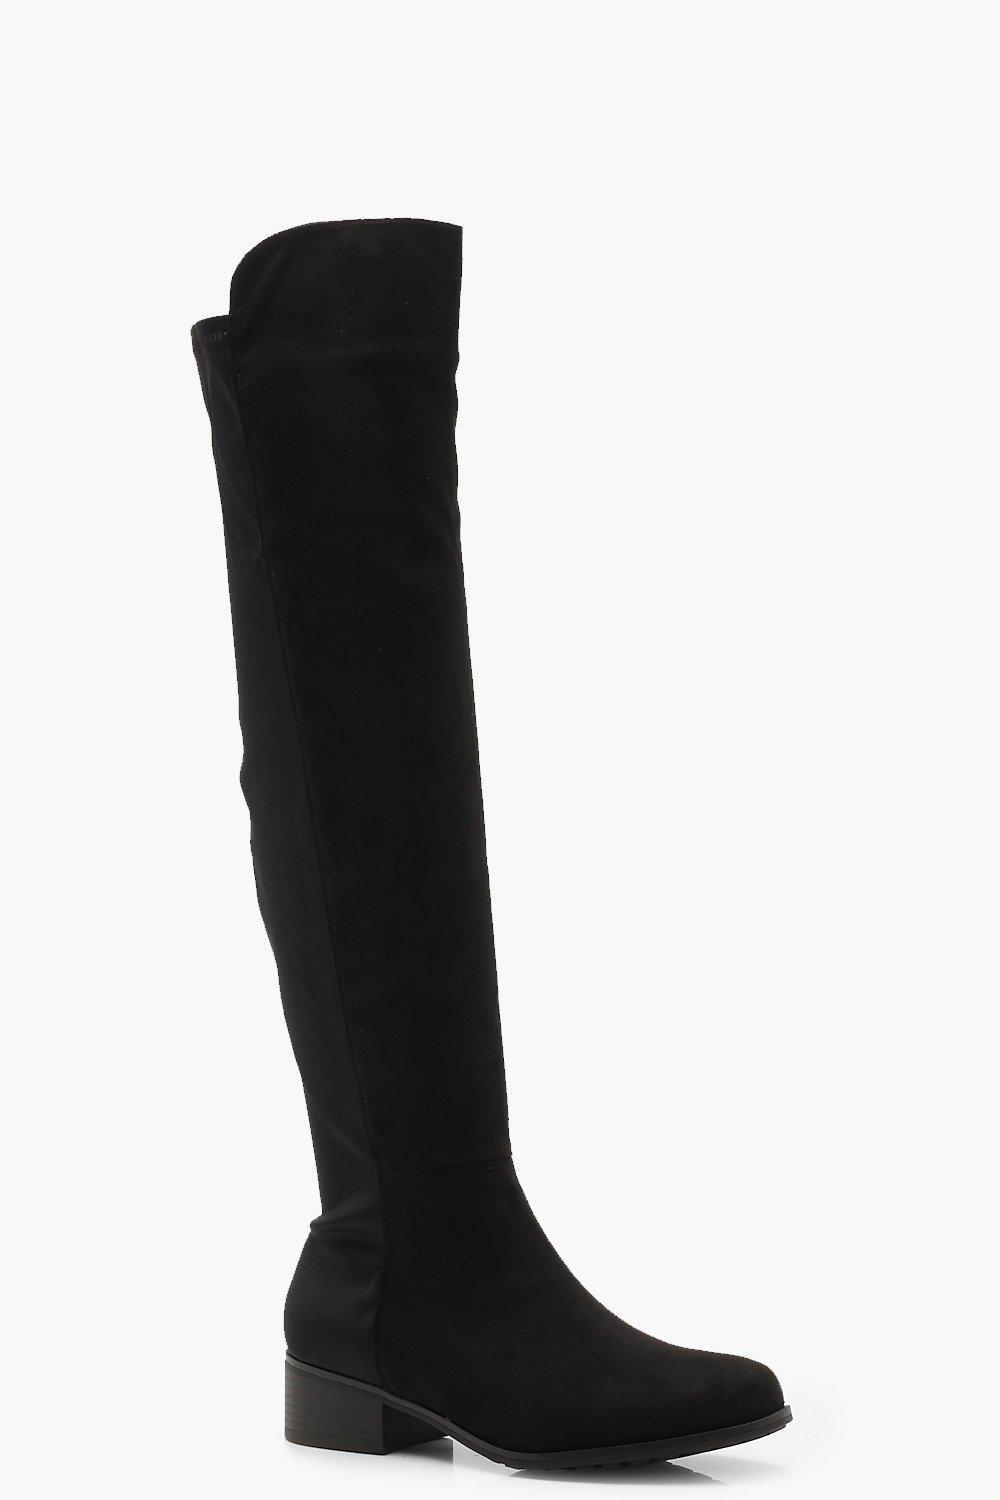 Eve Elastic Back Flat Over Knee Boot